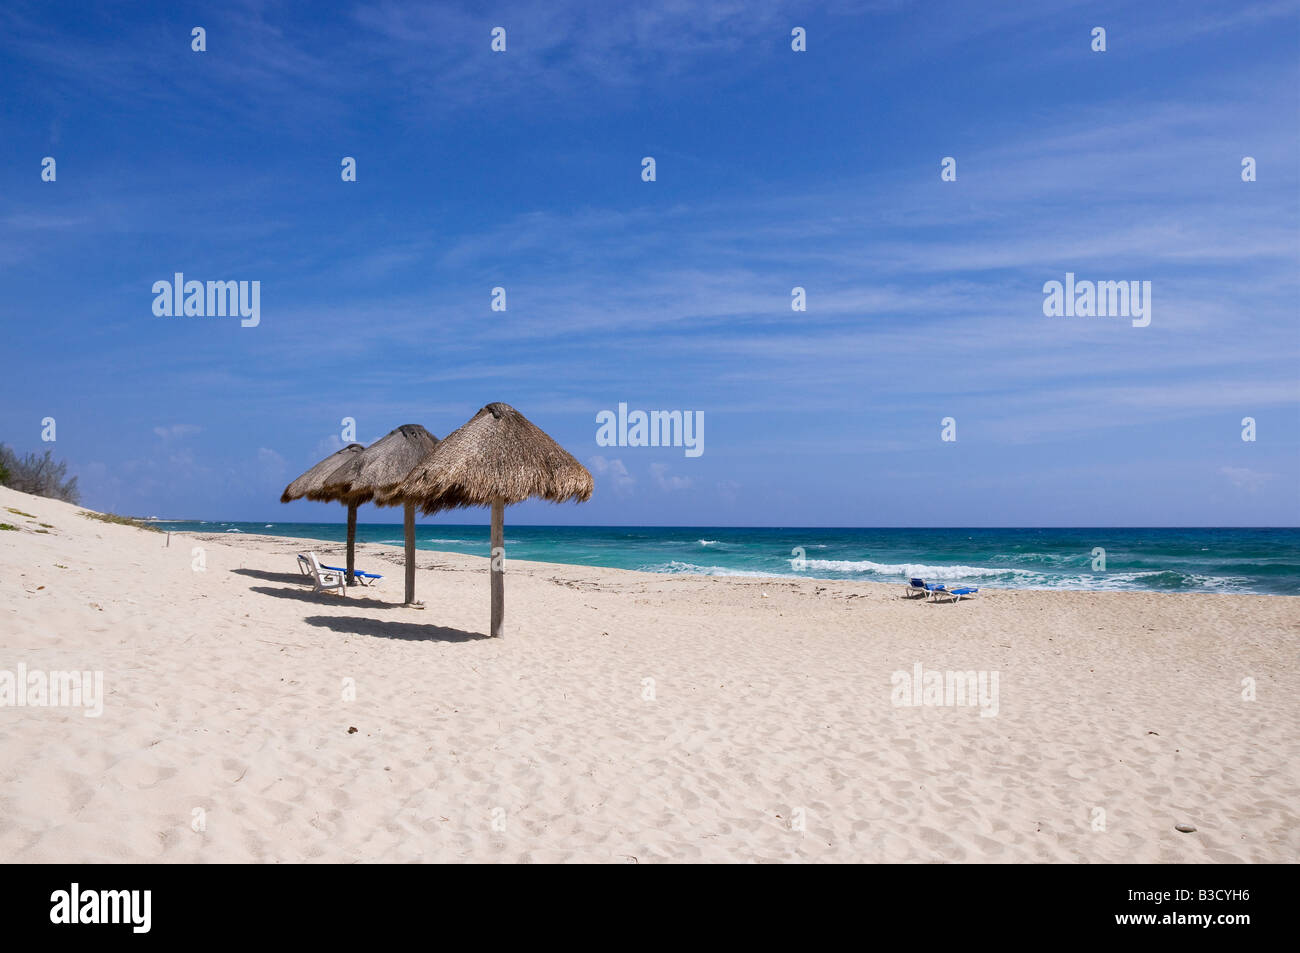 Mexiko, Cozumel, Beach chairs and Palapas on tropical beach - Stock Image